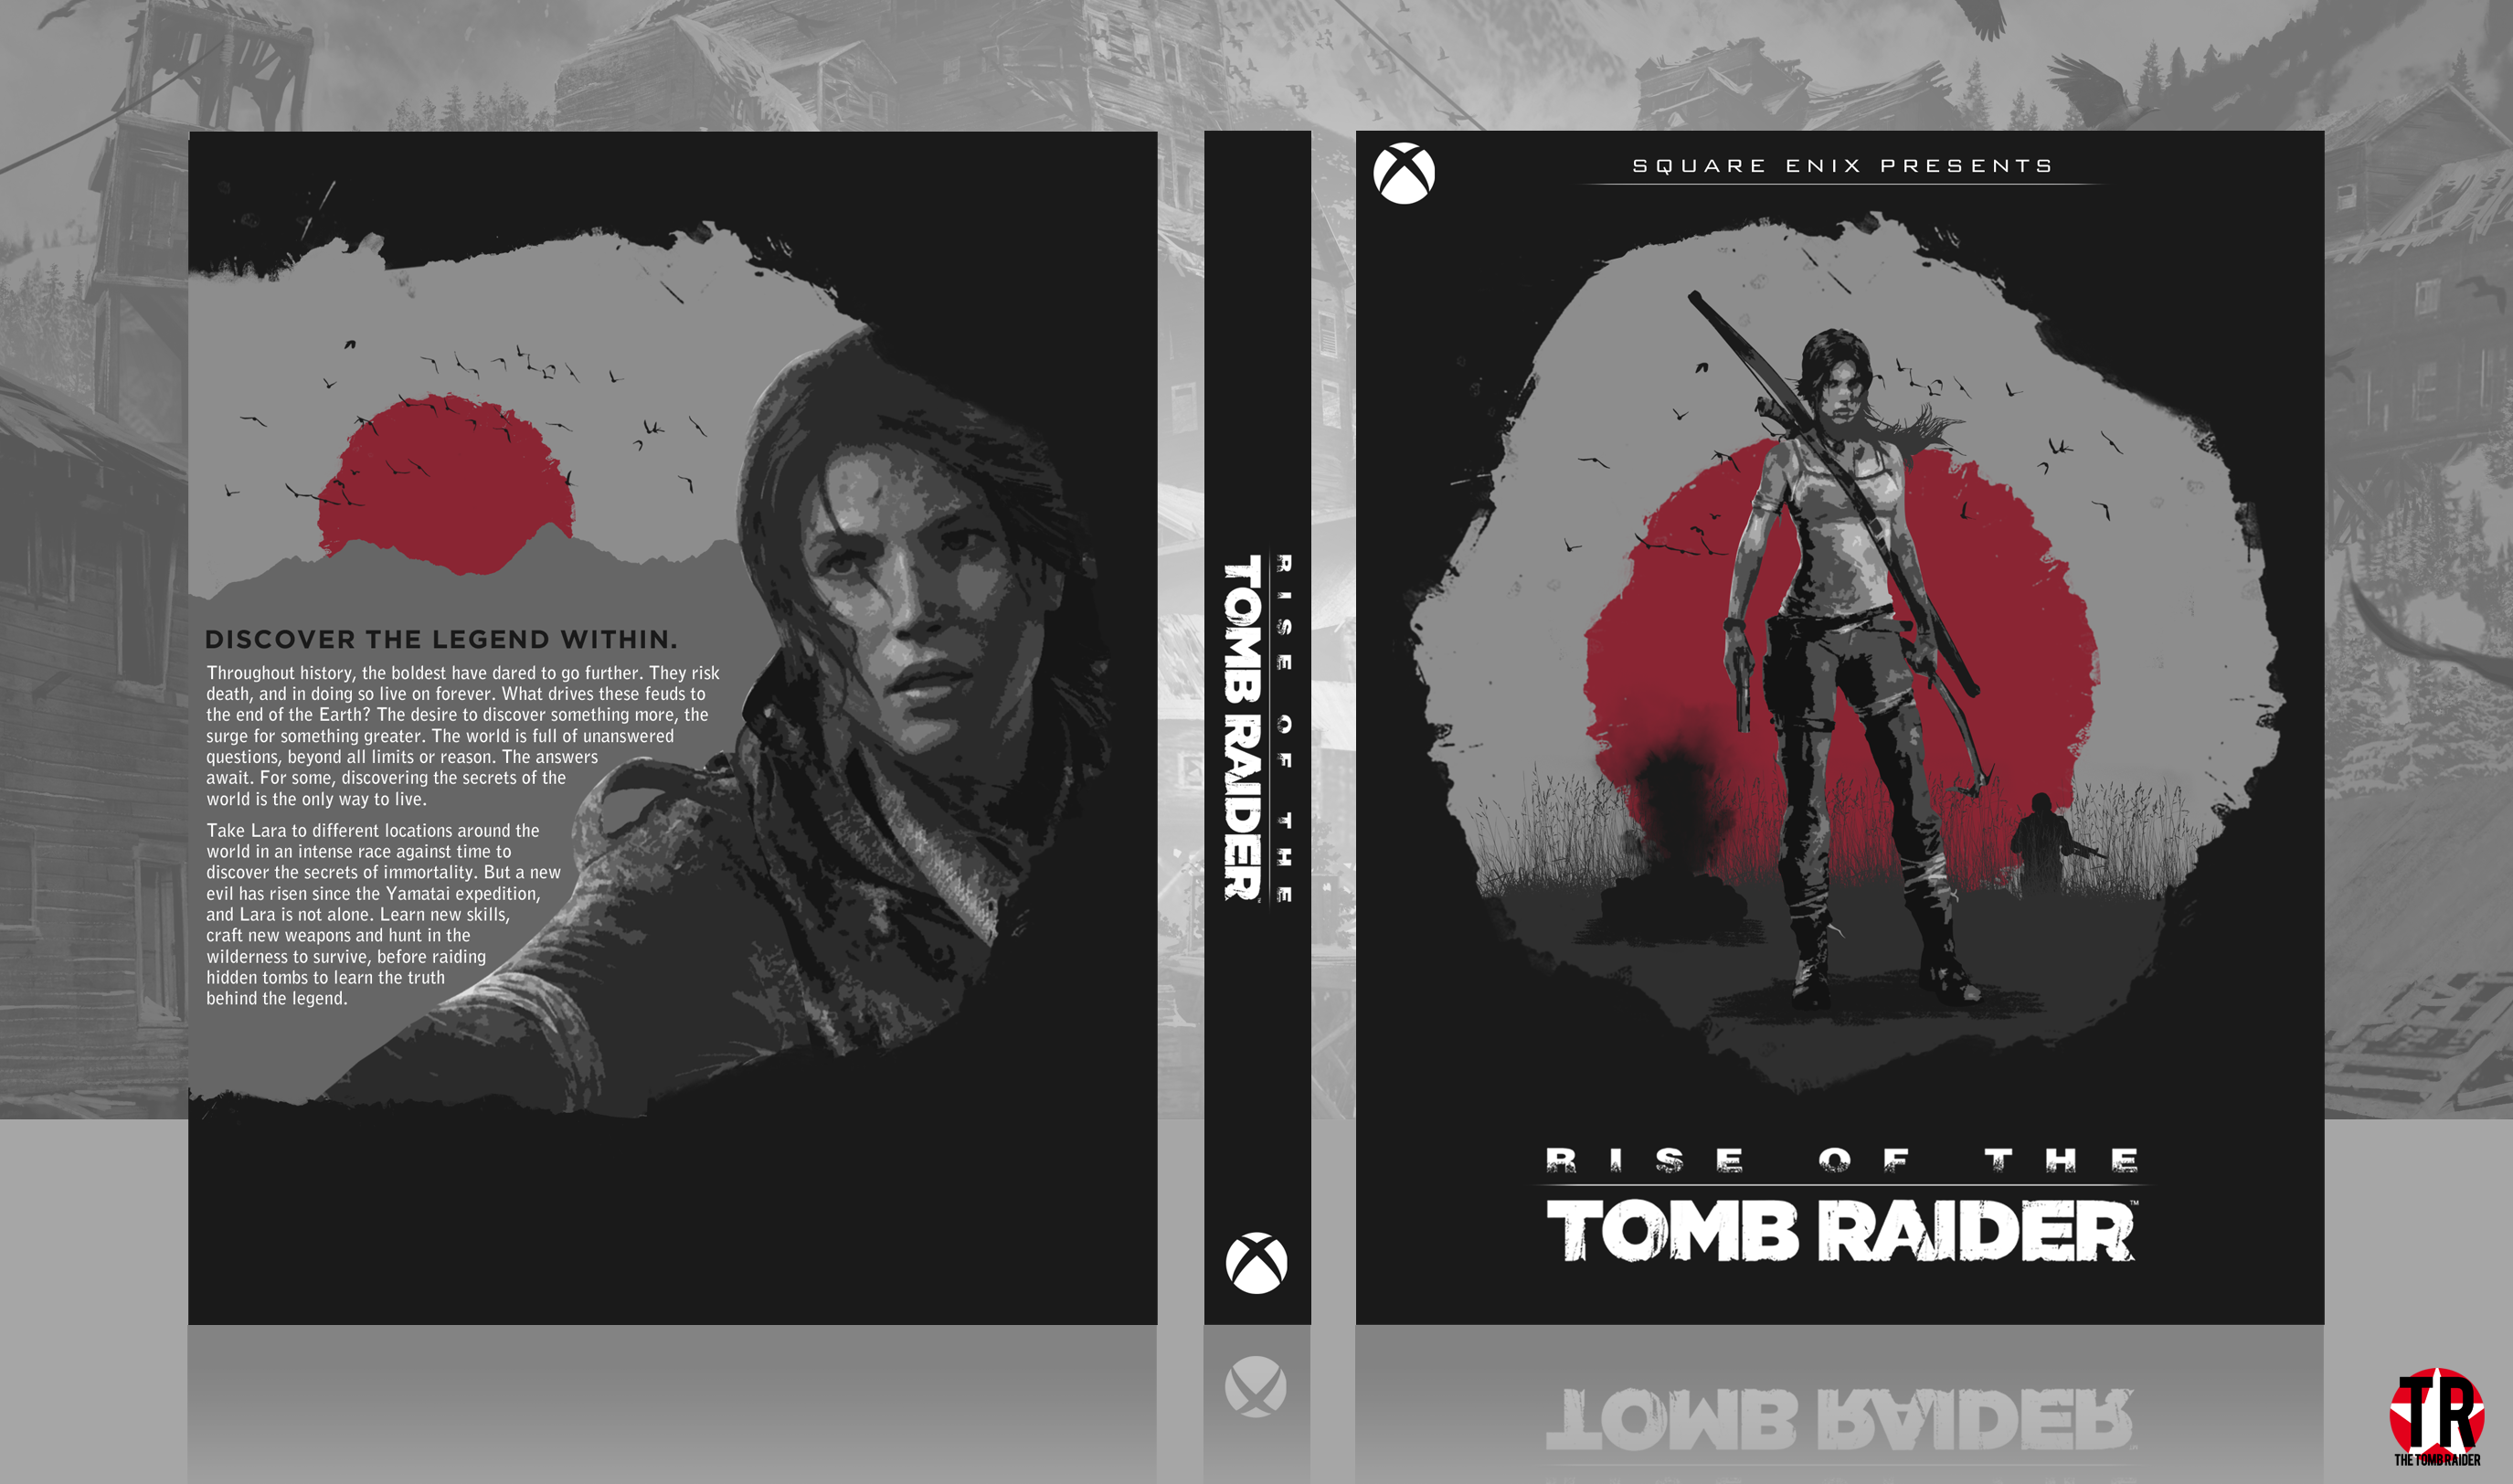 Rise of the Tomb Raider box cover